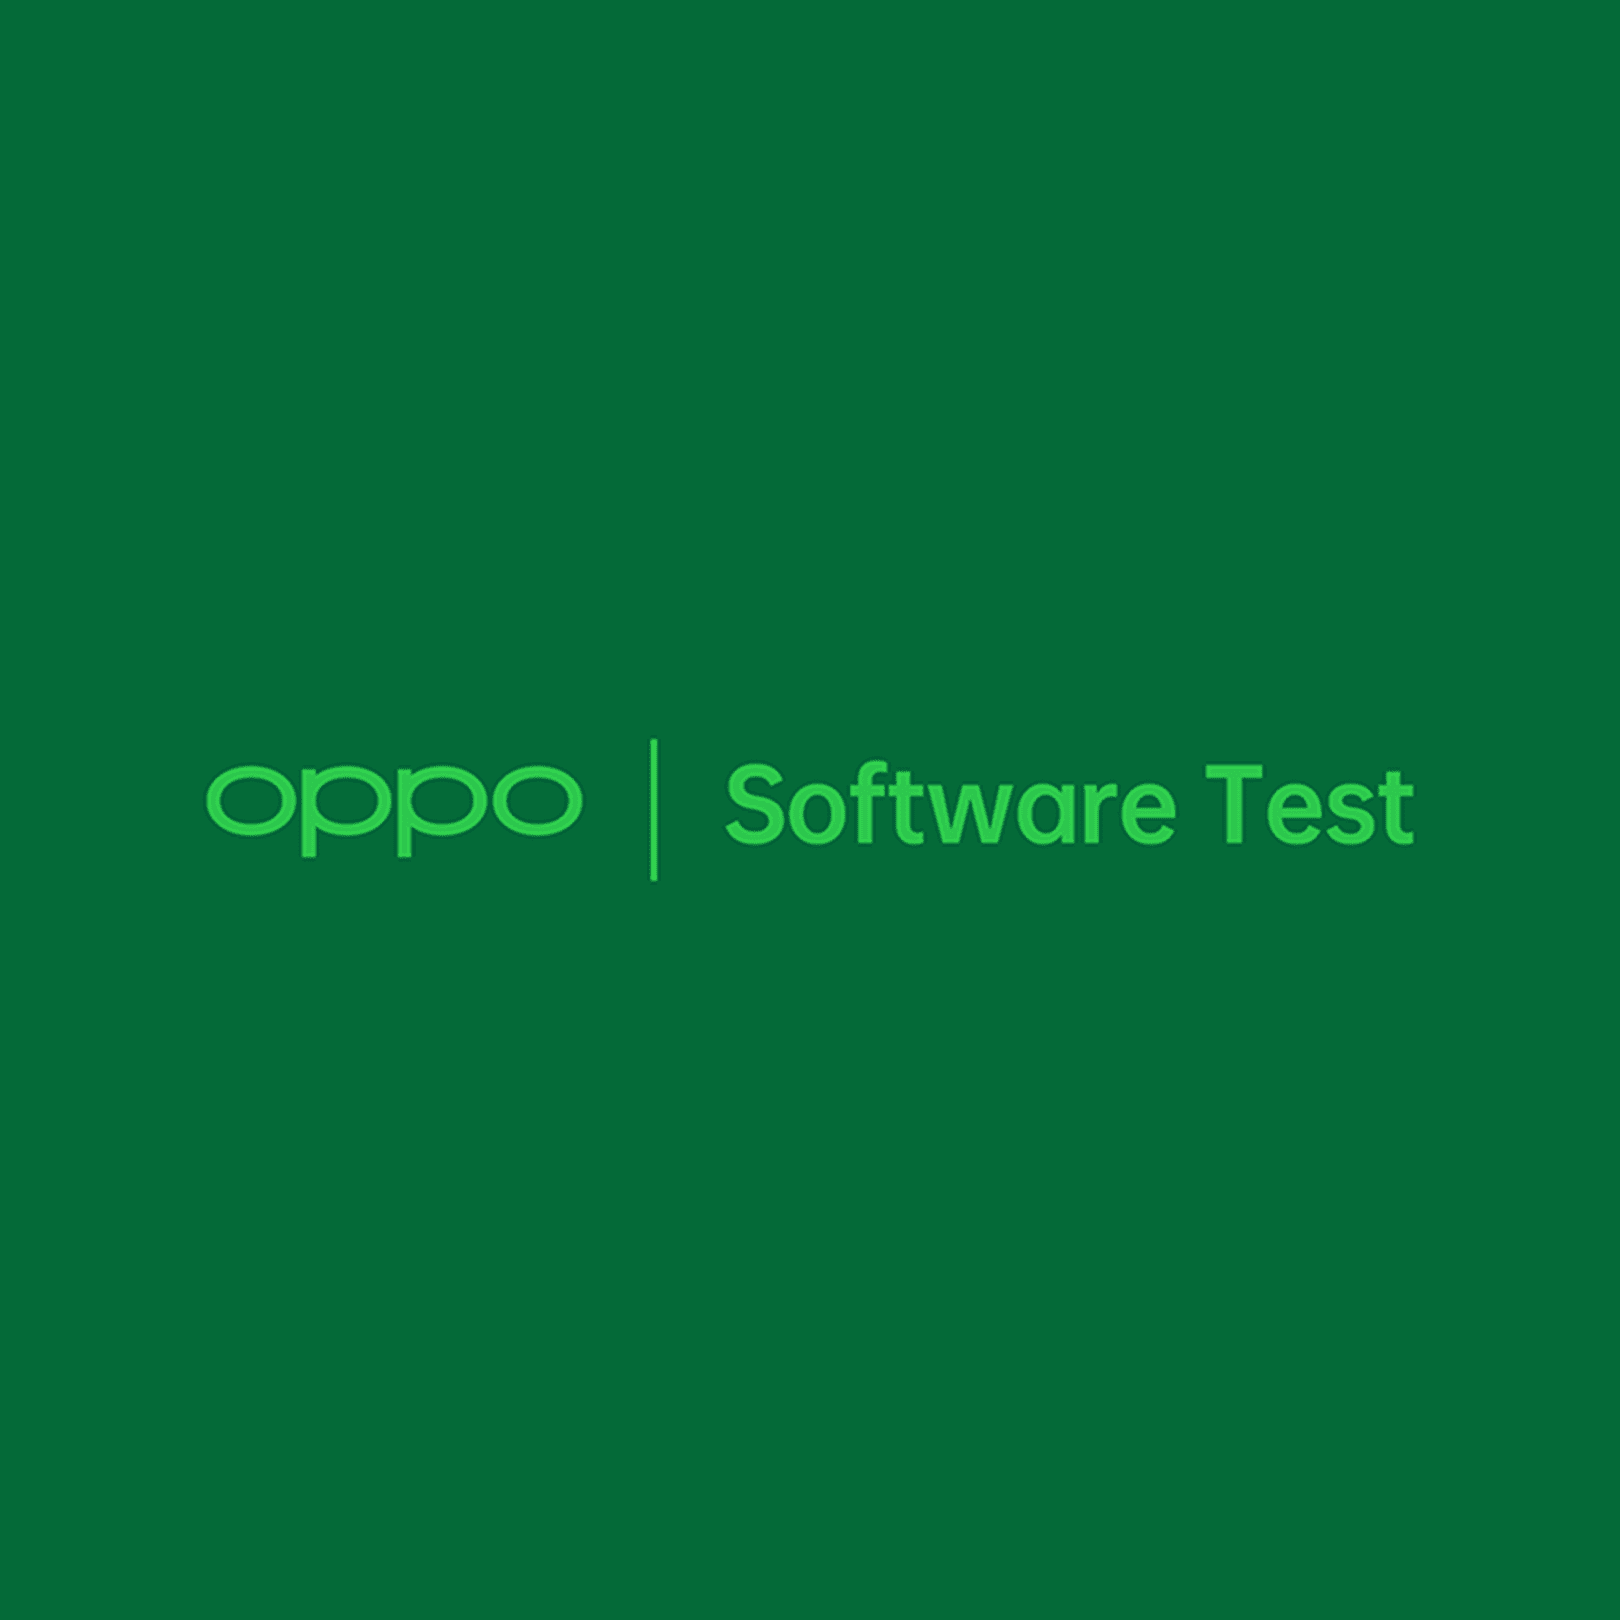 OPPO Software Test